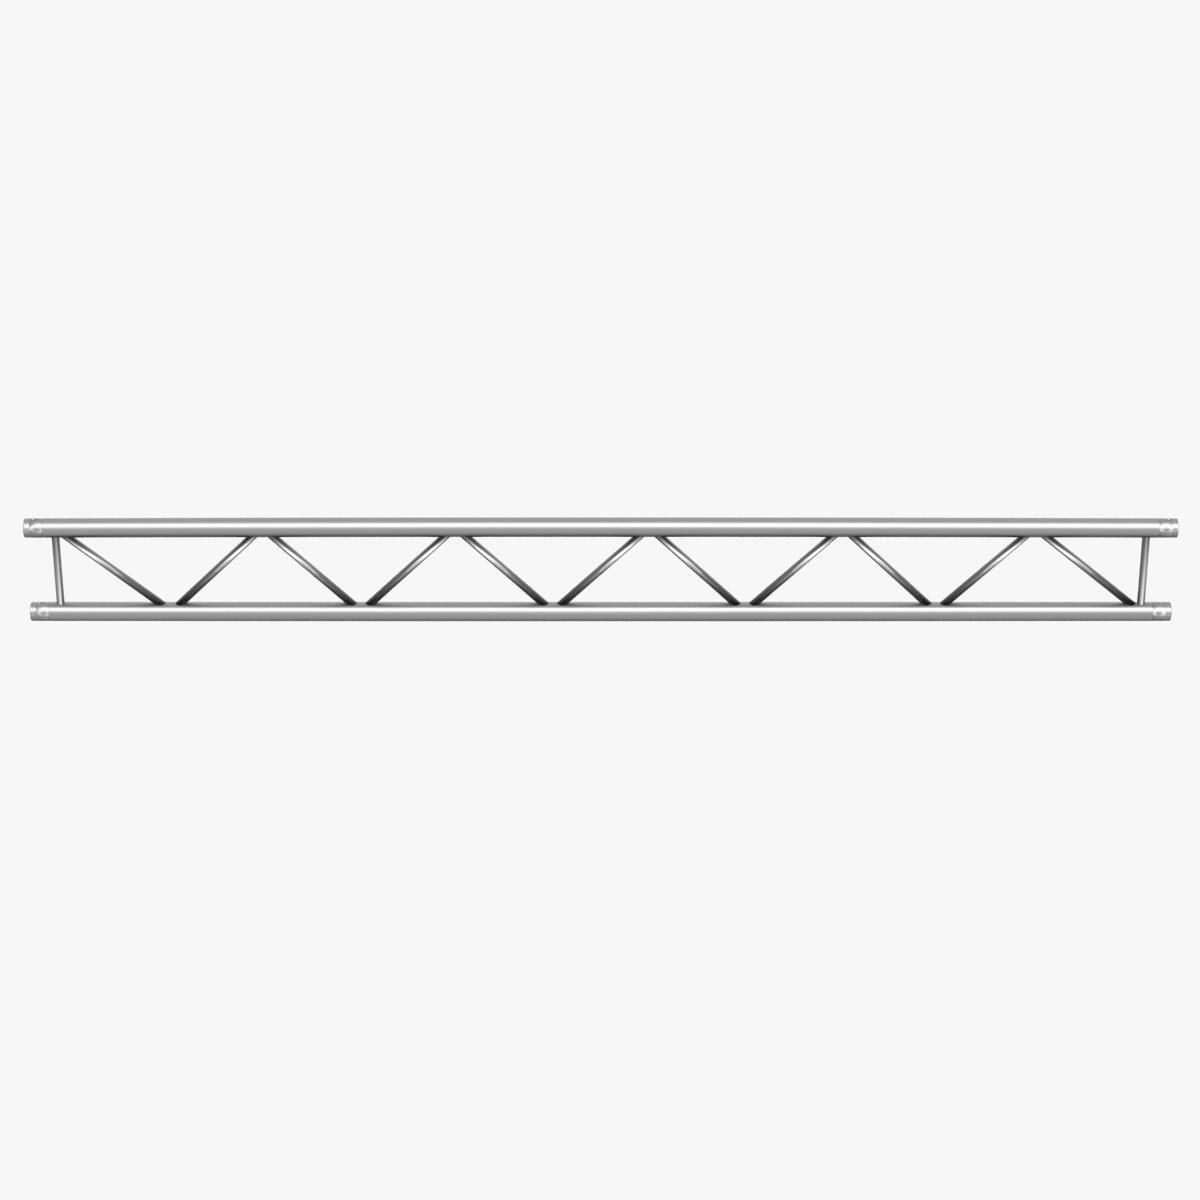 beam trusses (collection 24 modular pieces) 3d model 3ds max dxf fbx bmp blend c4d dae other obj 268728